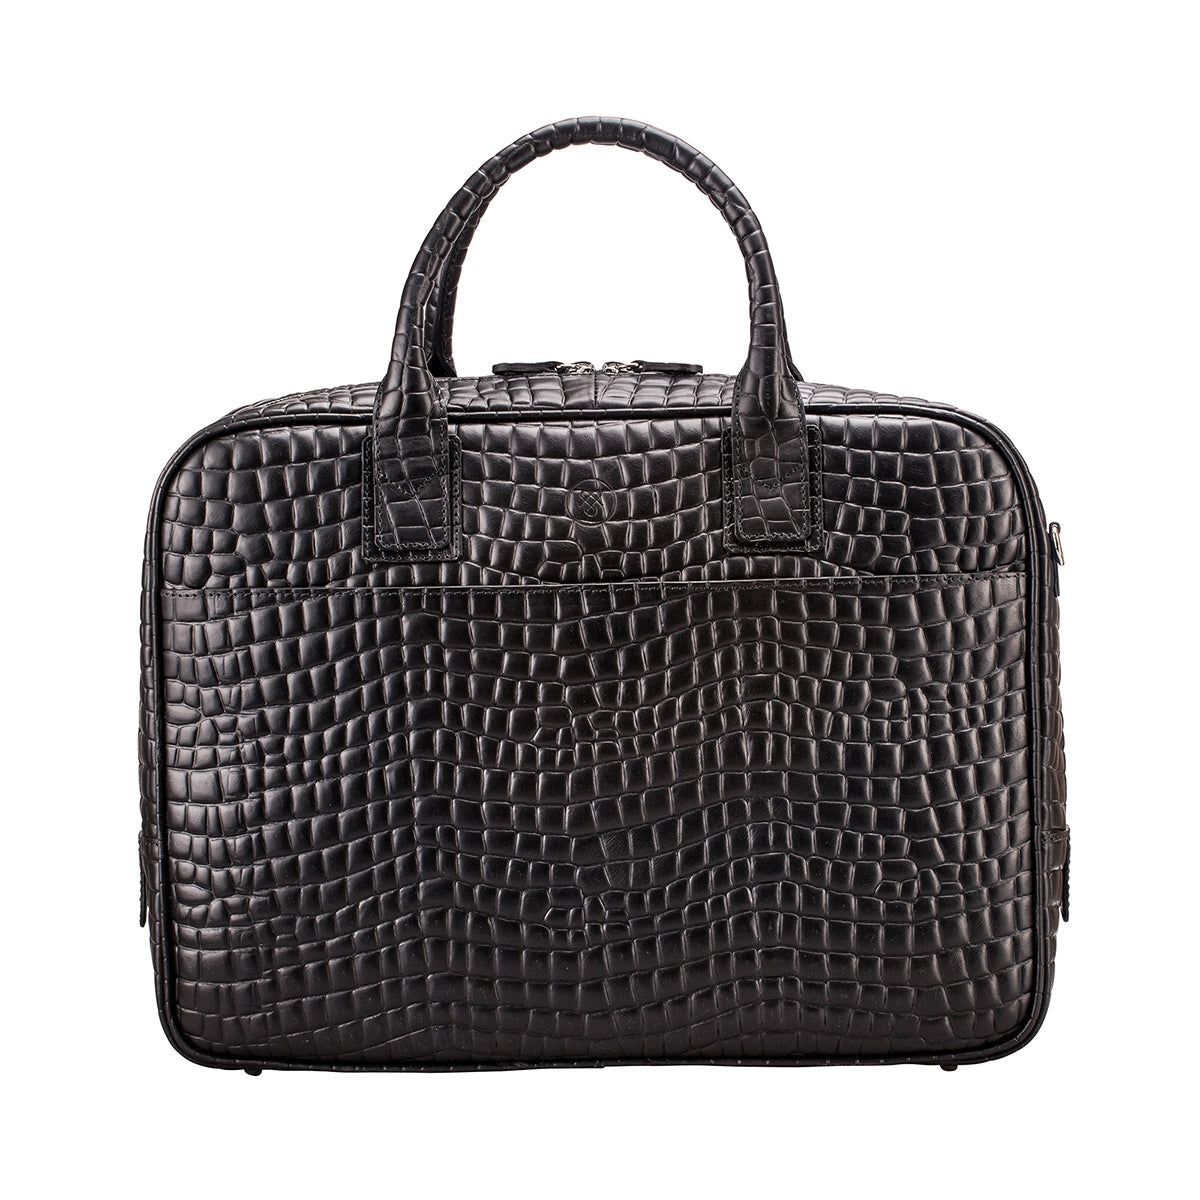 Image 1 of the 'Calvino' Black Croco Veg-Tanned Leather Briefcase